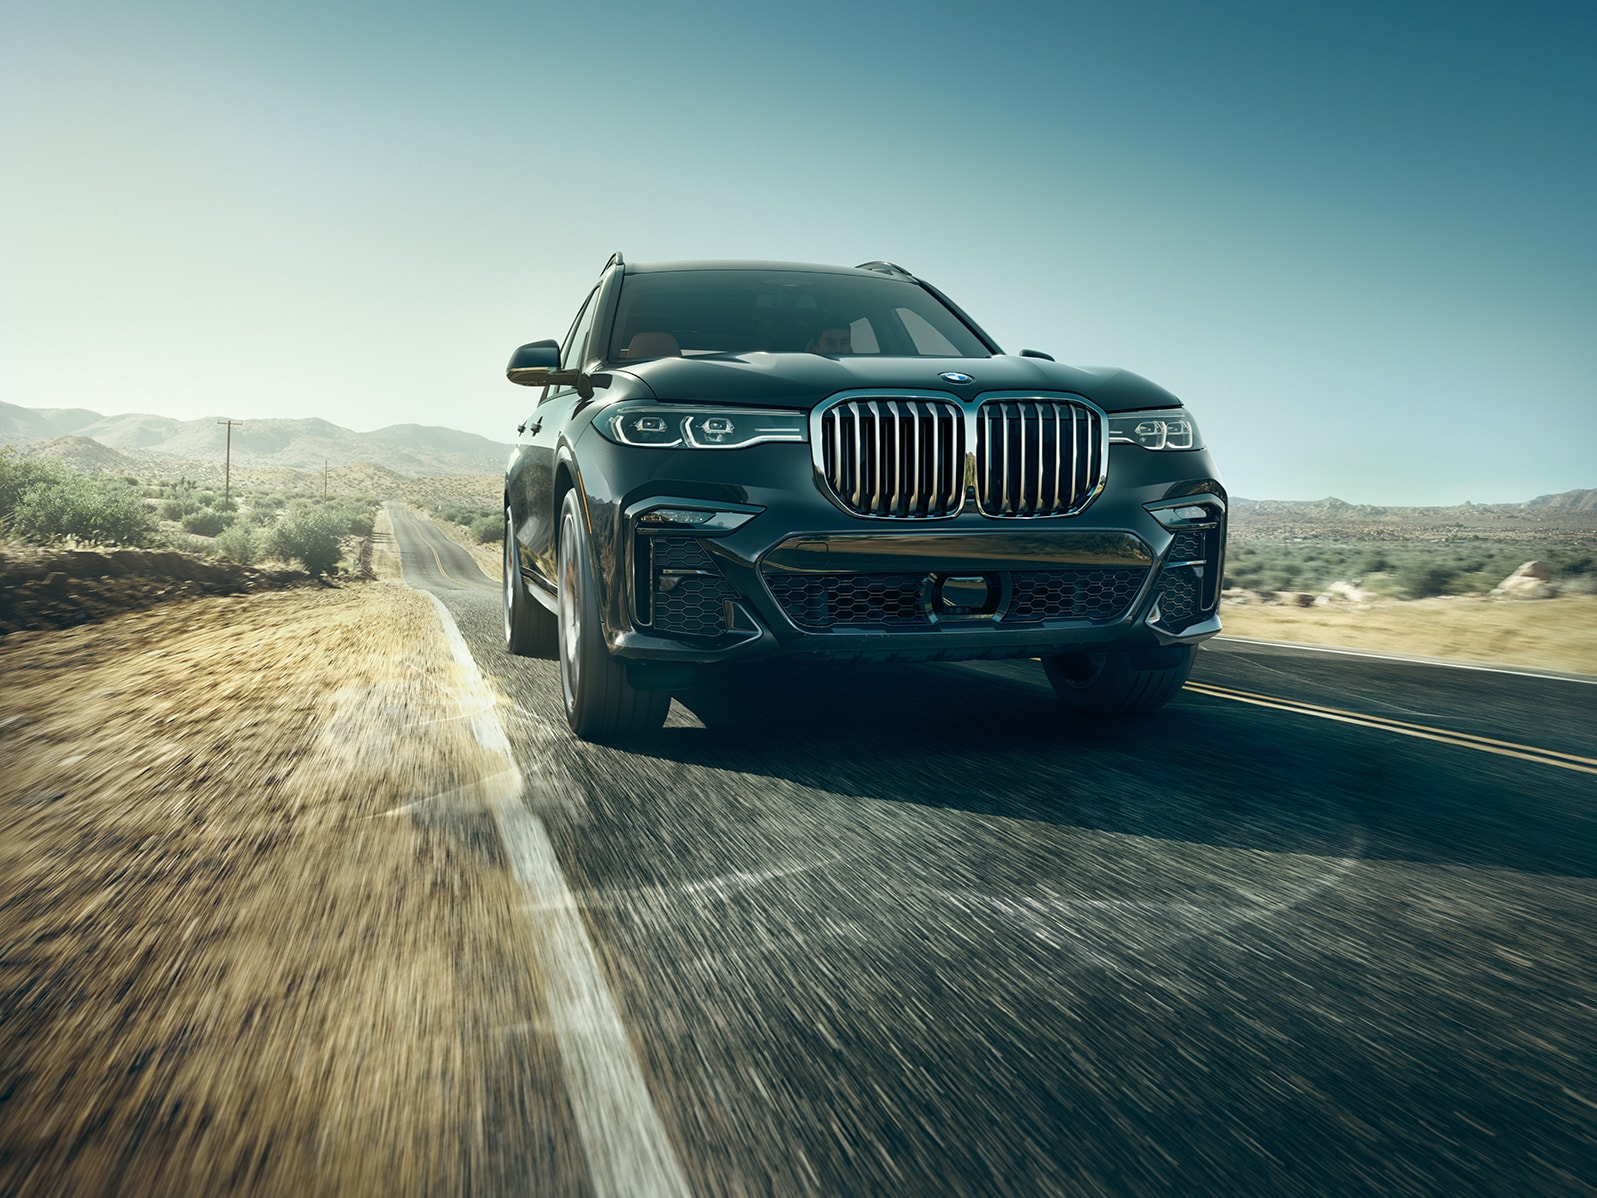 Model Features of the 2020 BMW X7 at BMW of Rockville | Black 2020 BMW X7 running on road